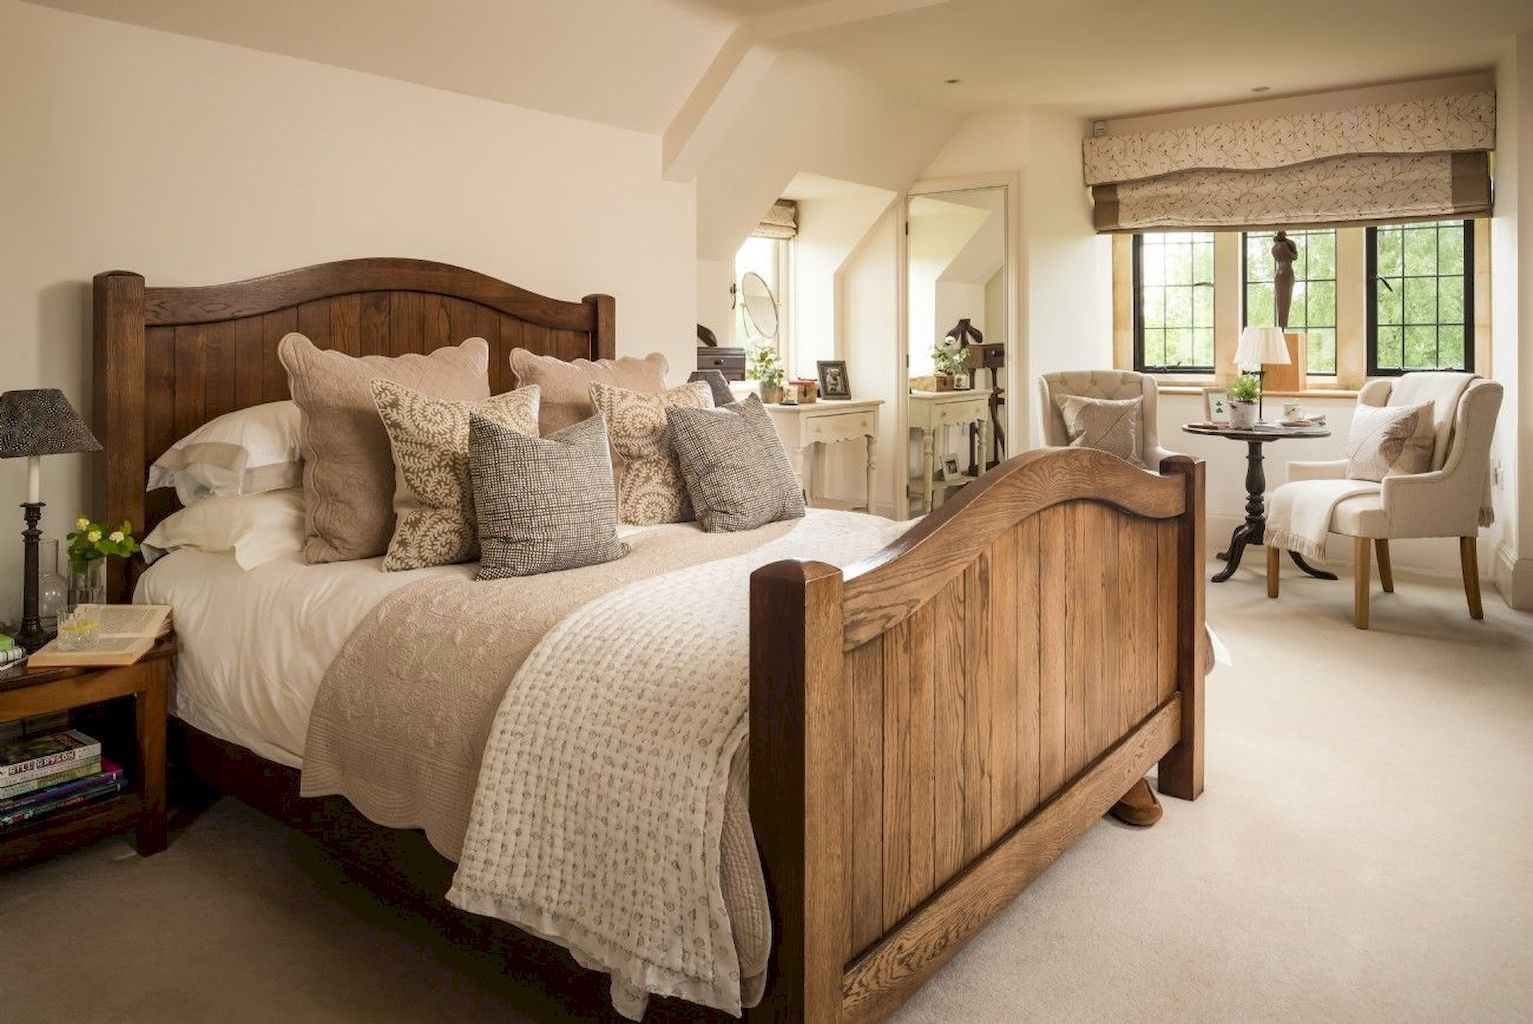 80 rustic farmhouse master bedroom ideas country cottage on modern farmhouse master bedroom ideas id=58036